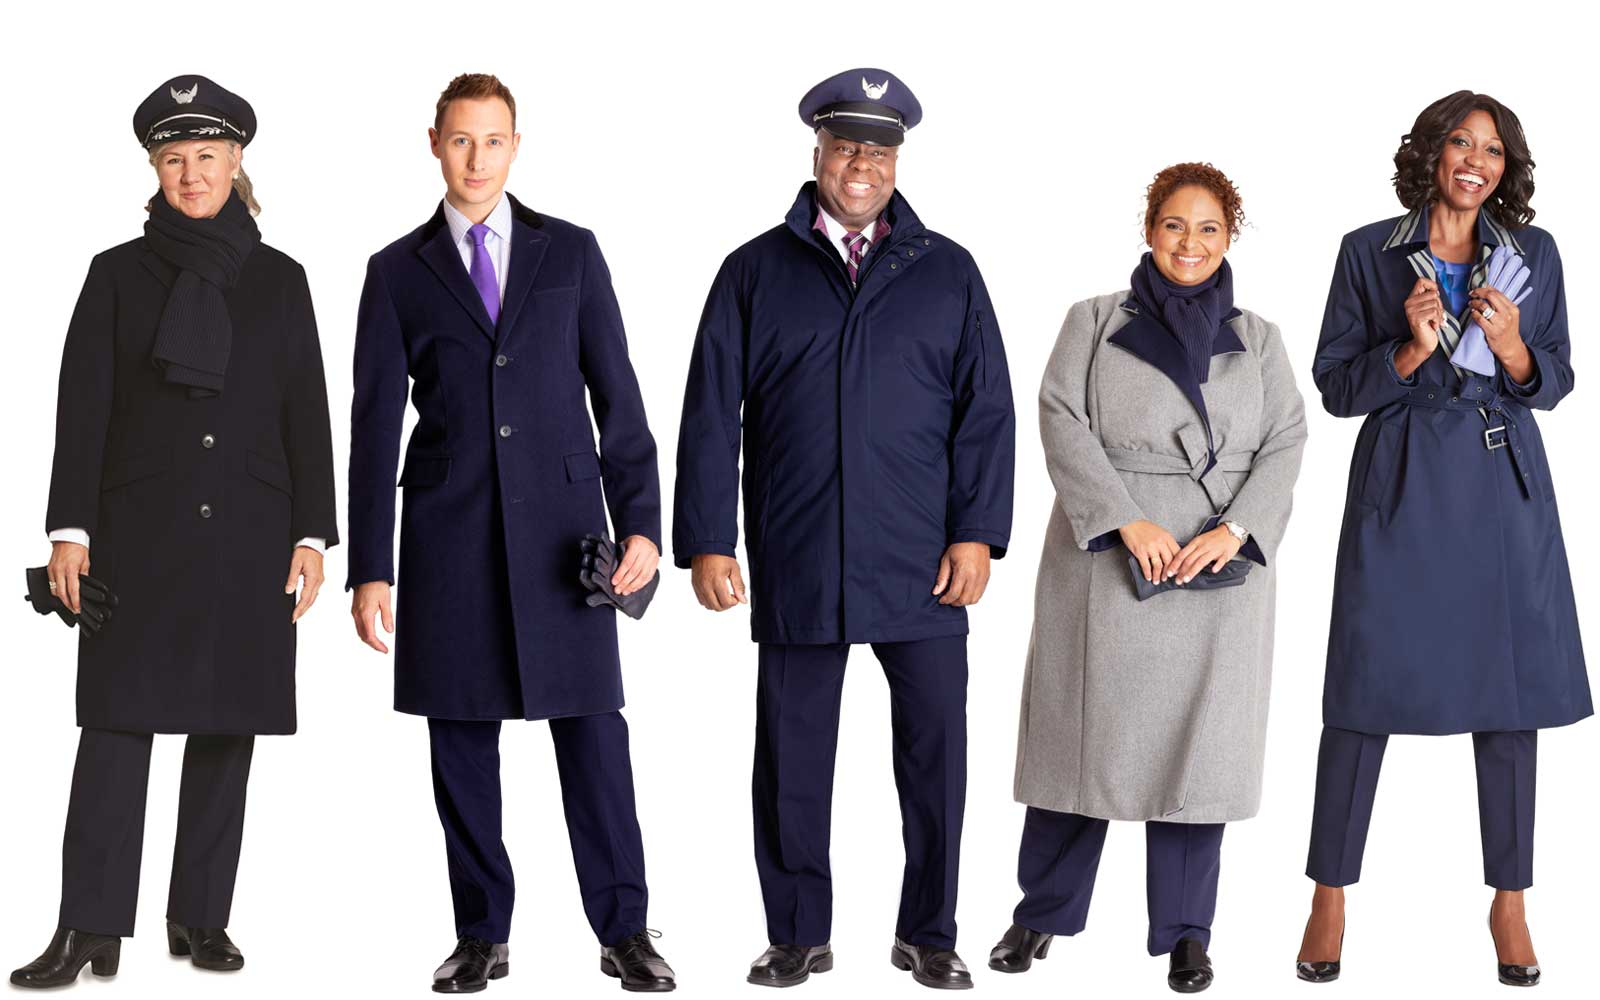 United Has New Uniforms — and There's a Reason Airlines Are Dressing Their Employees in Purple